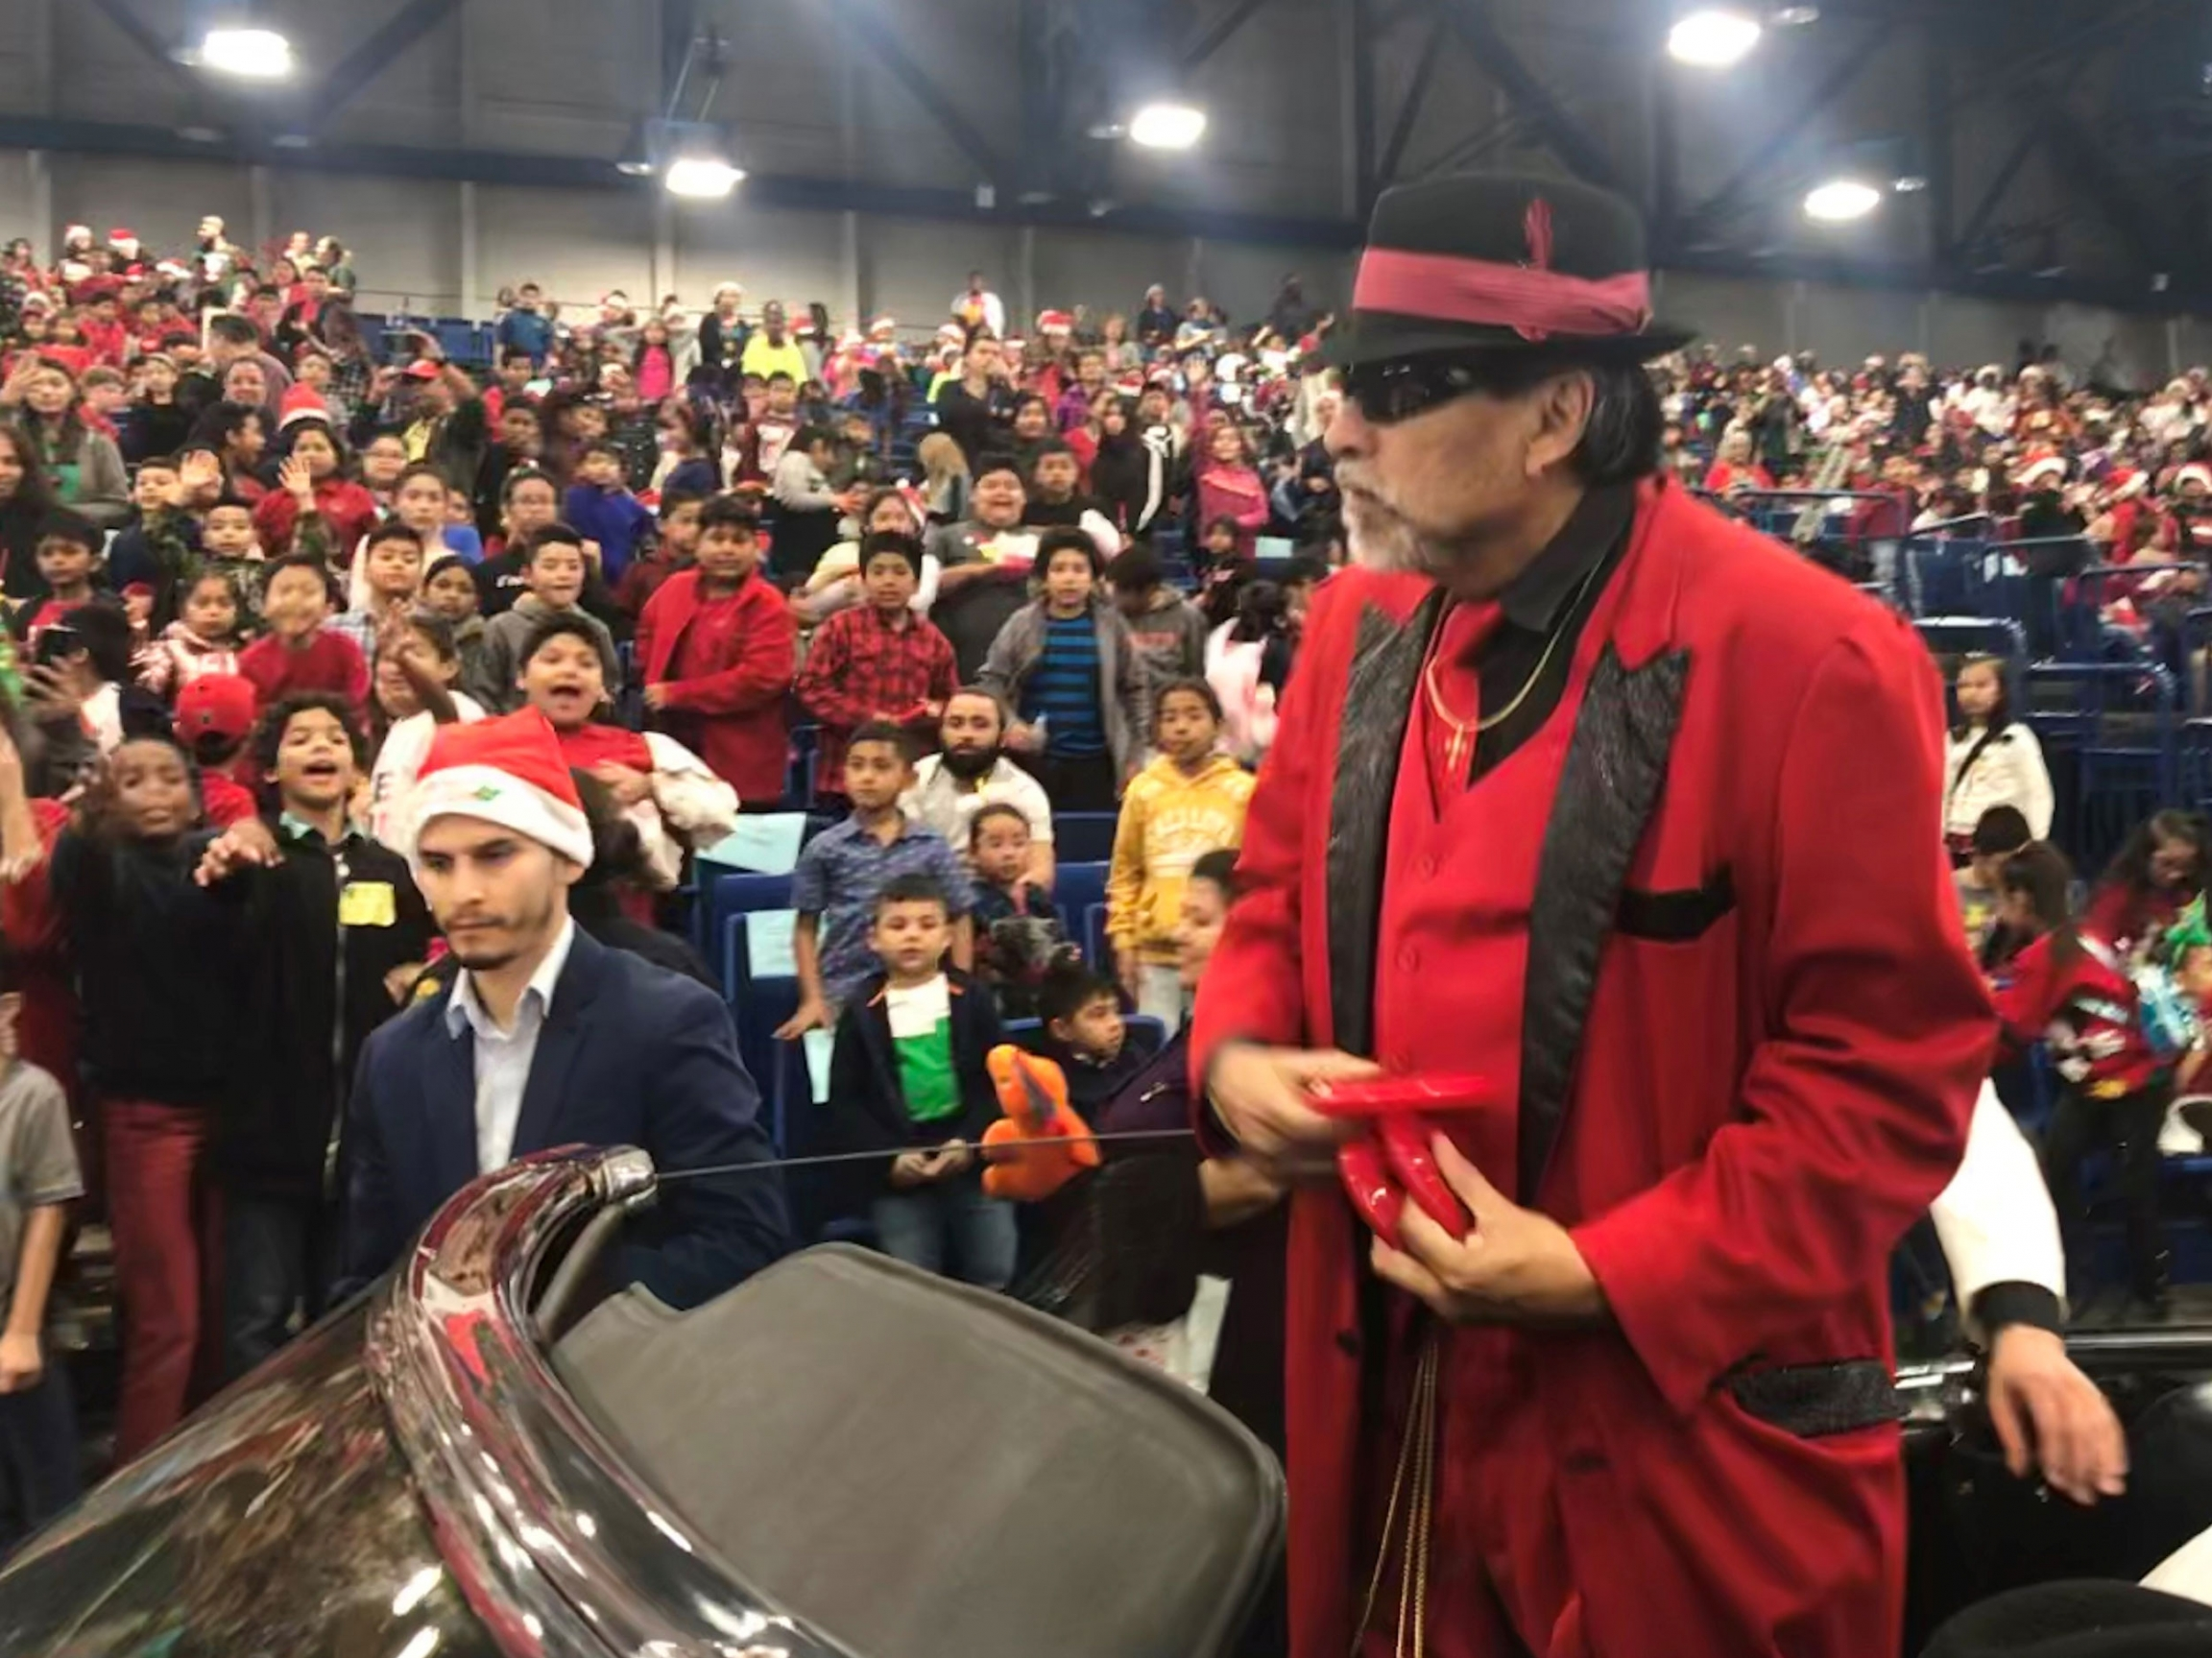 Pancho Claus is shown in a red jacket and black hat standing in a car with a large crowd behind him.